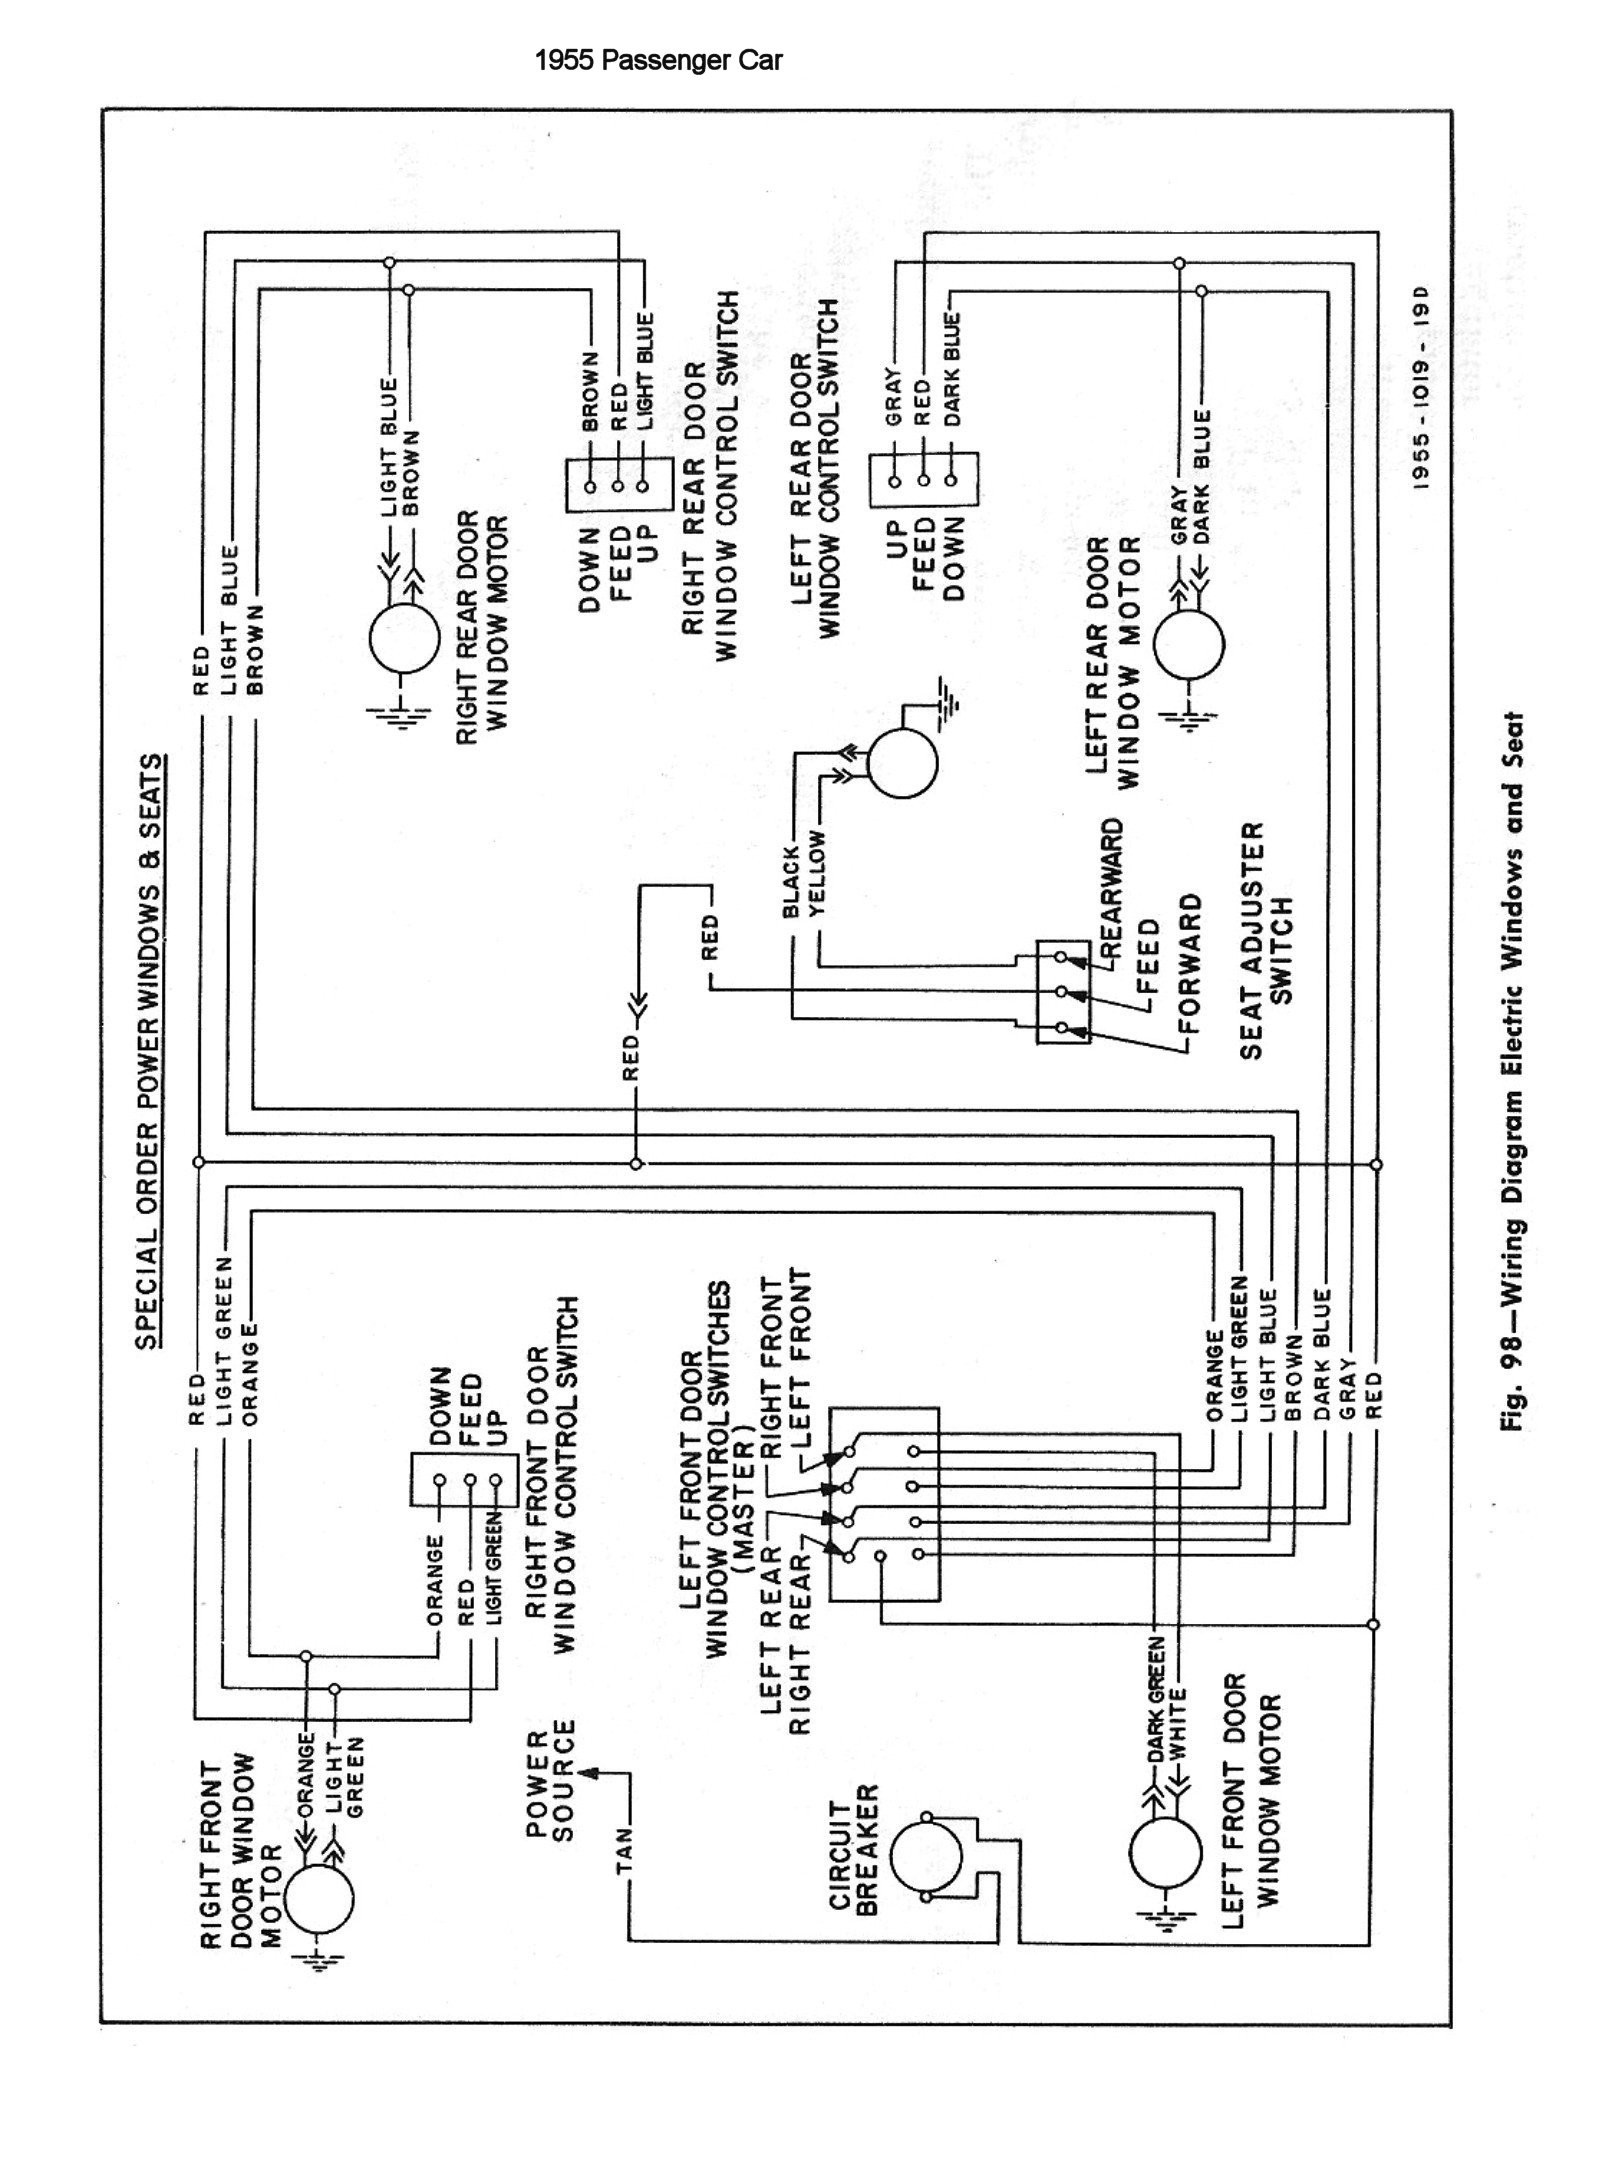 Wiring Diagram For 1979 Toyota Corolla. Toyota. Wiring